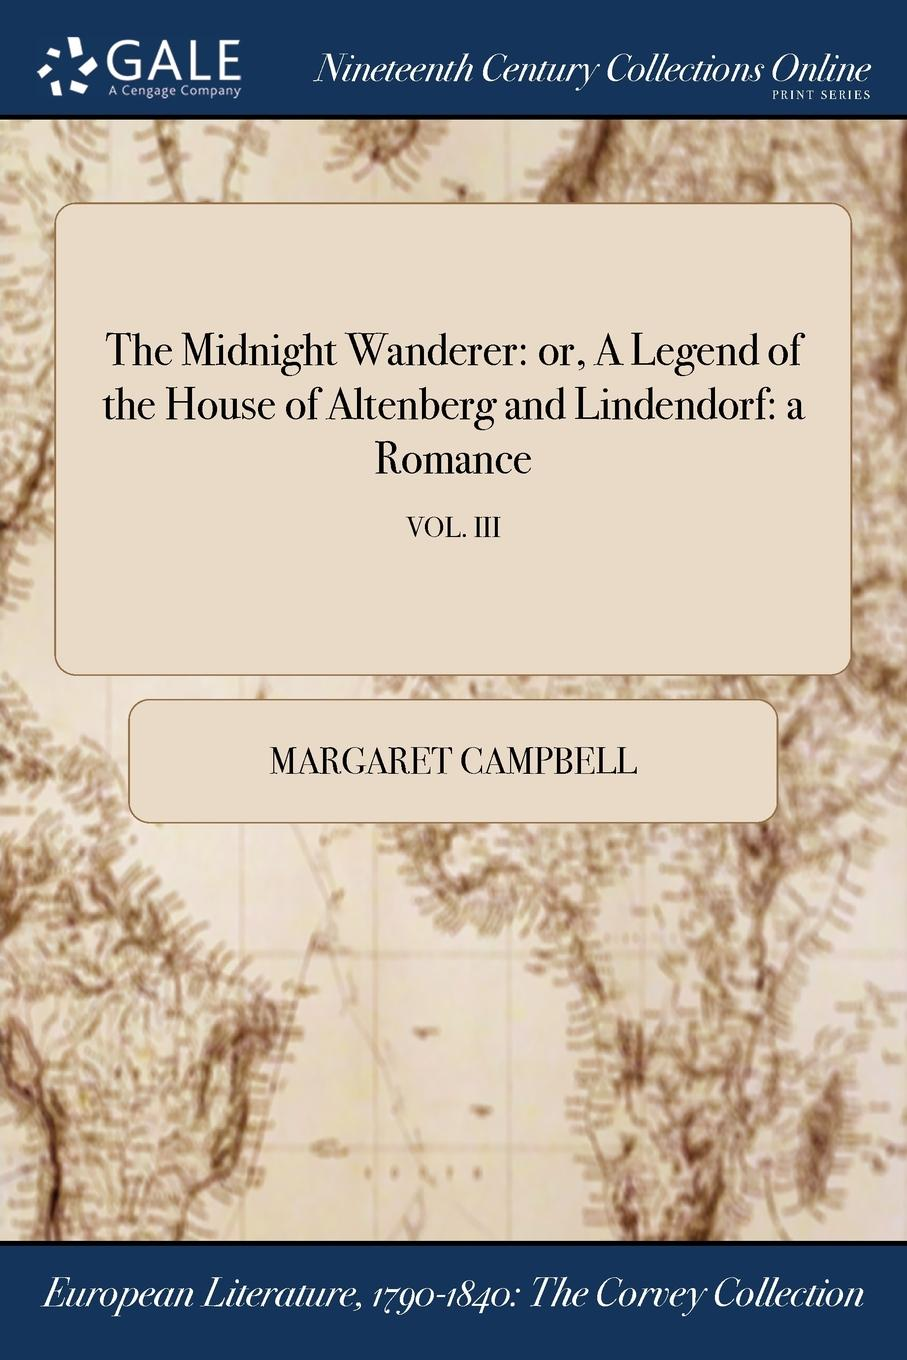 Margaret Campbell The Midnight Wanderer. or, A Legend of the House of Altenberg and Lindendorf: a Romance; VOL. III